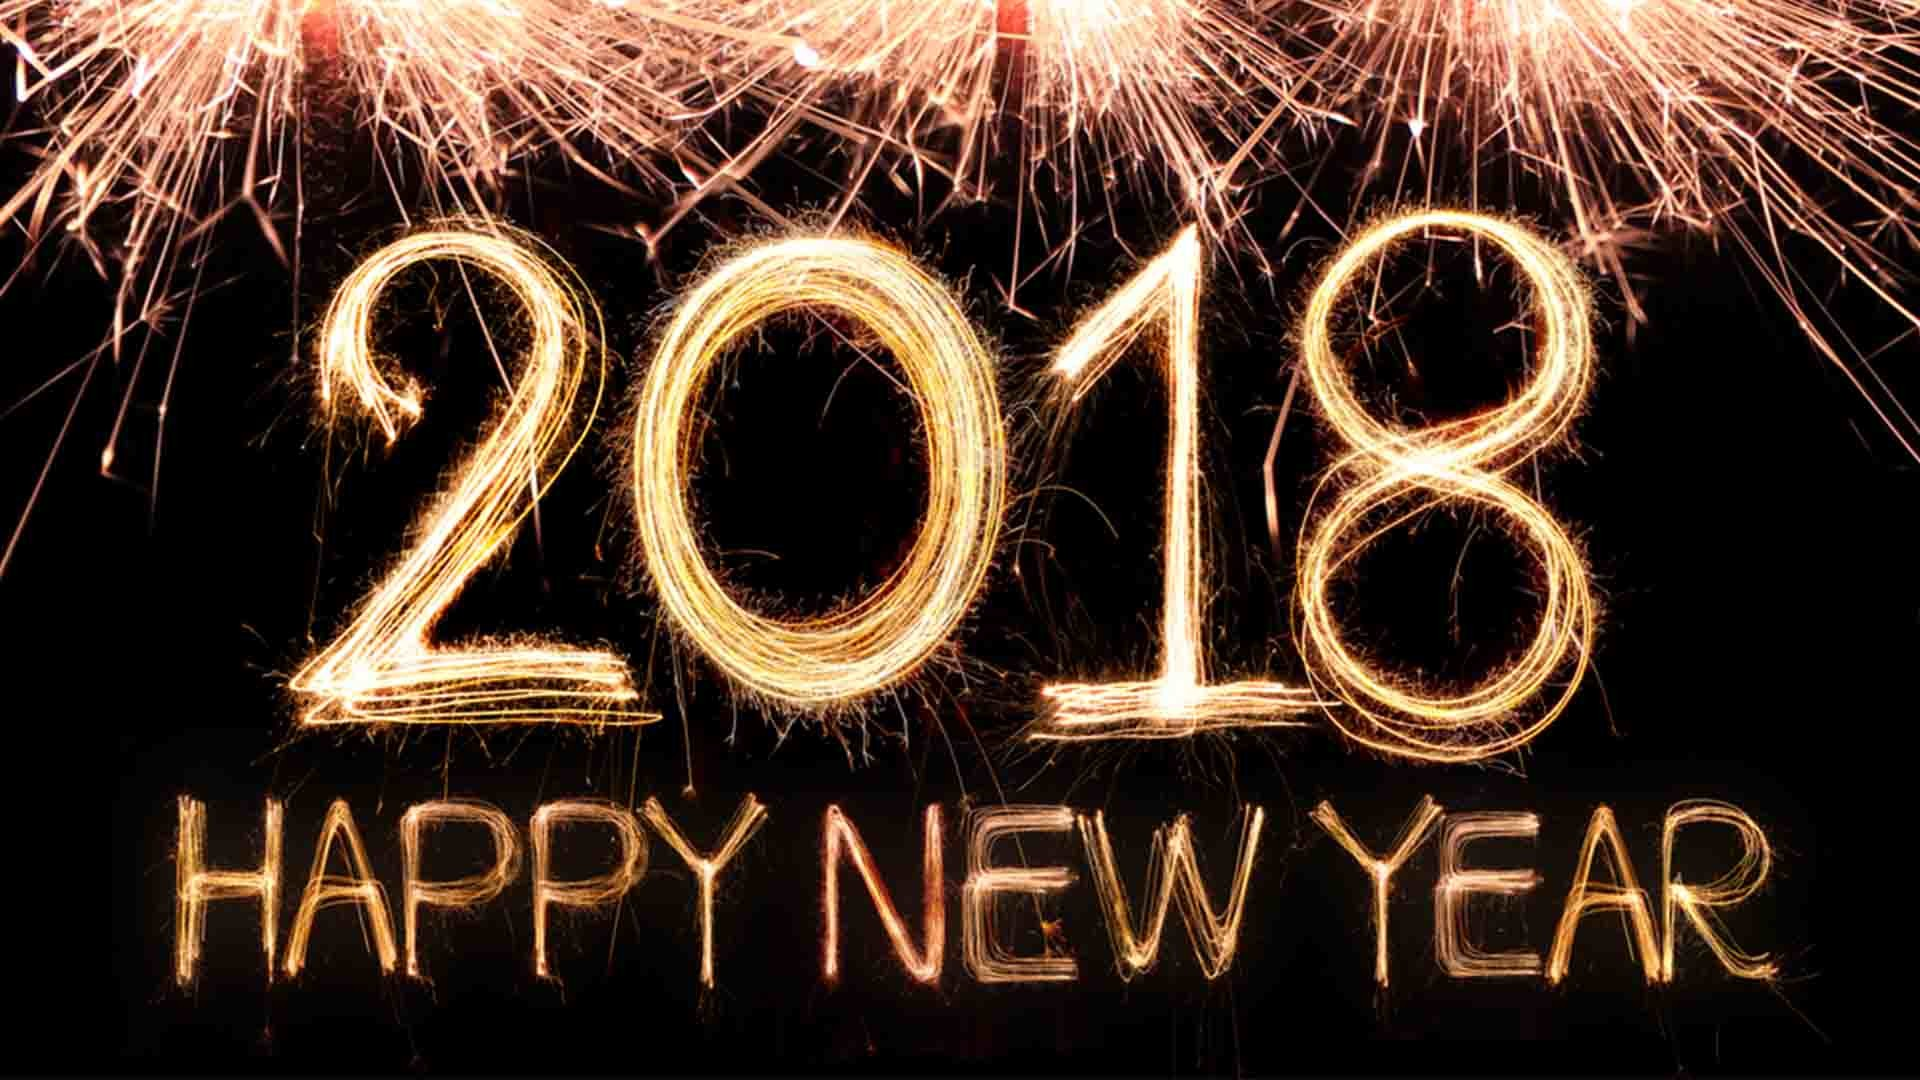 1920x1080 advance happy new year 2018 images download hd new year wallpapers